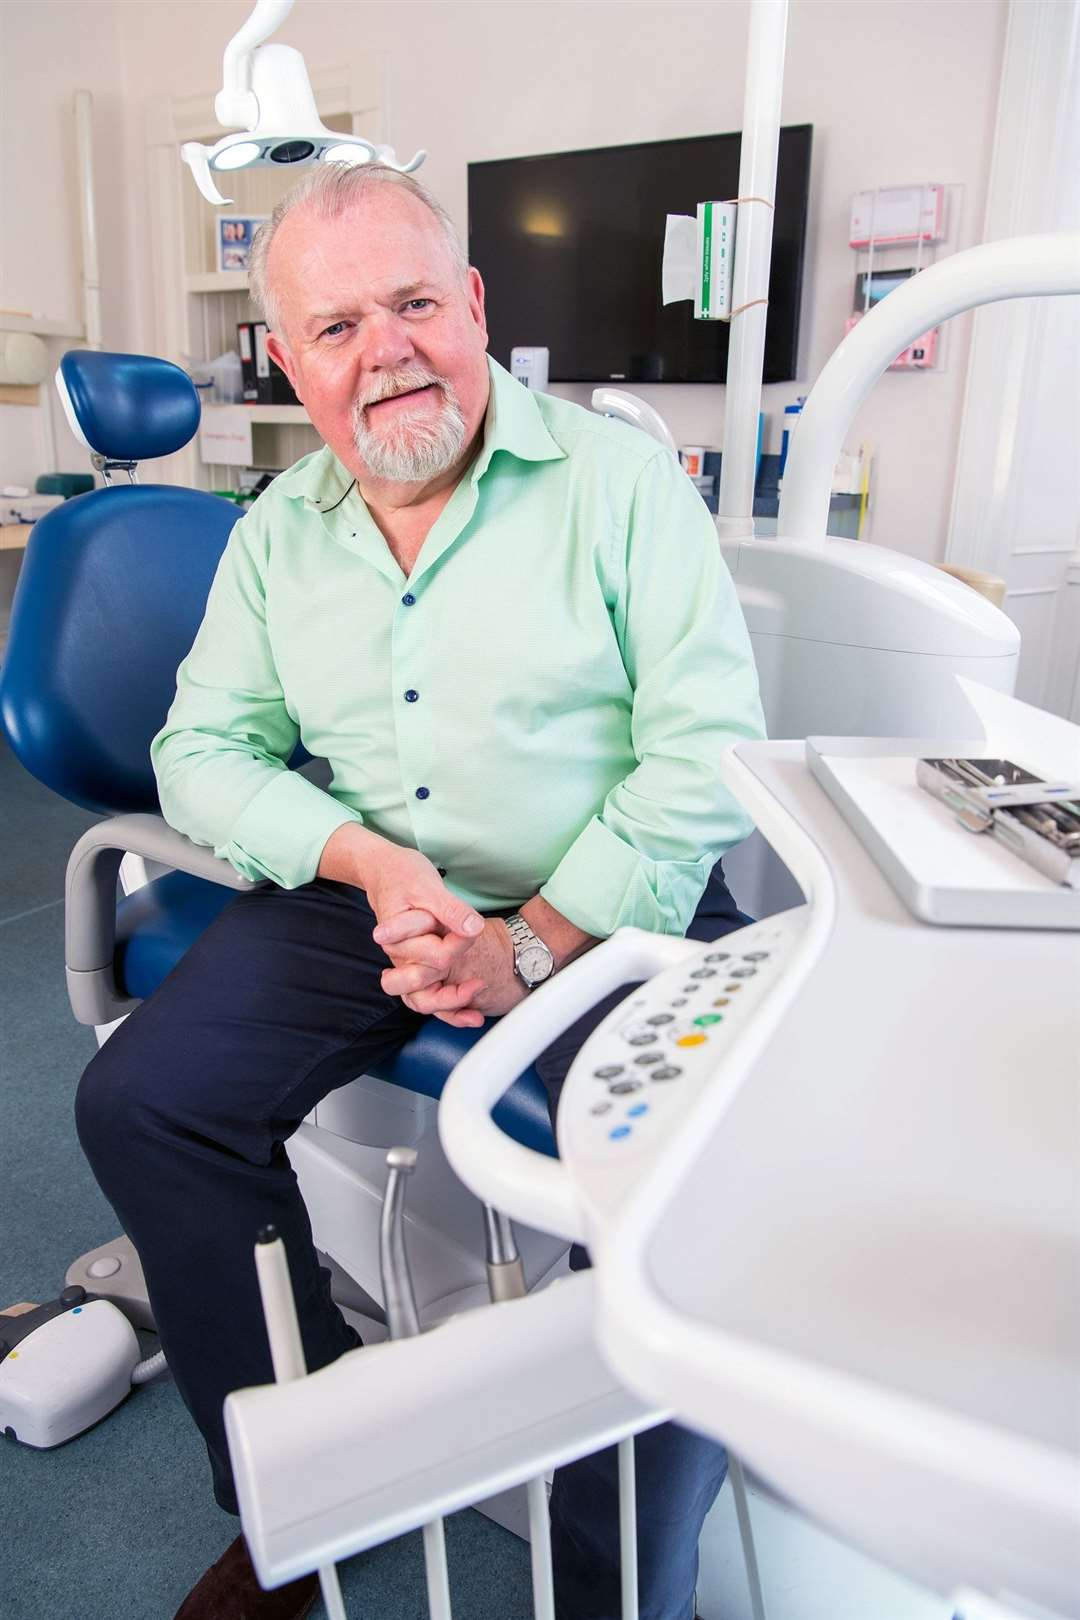 Clyde Munro Dental Group's CEO and founder, Jim Hall, in one of its clinics.